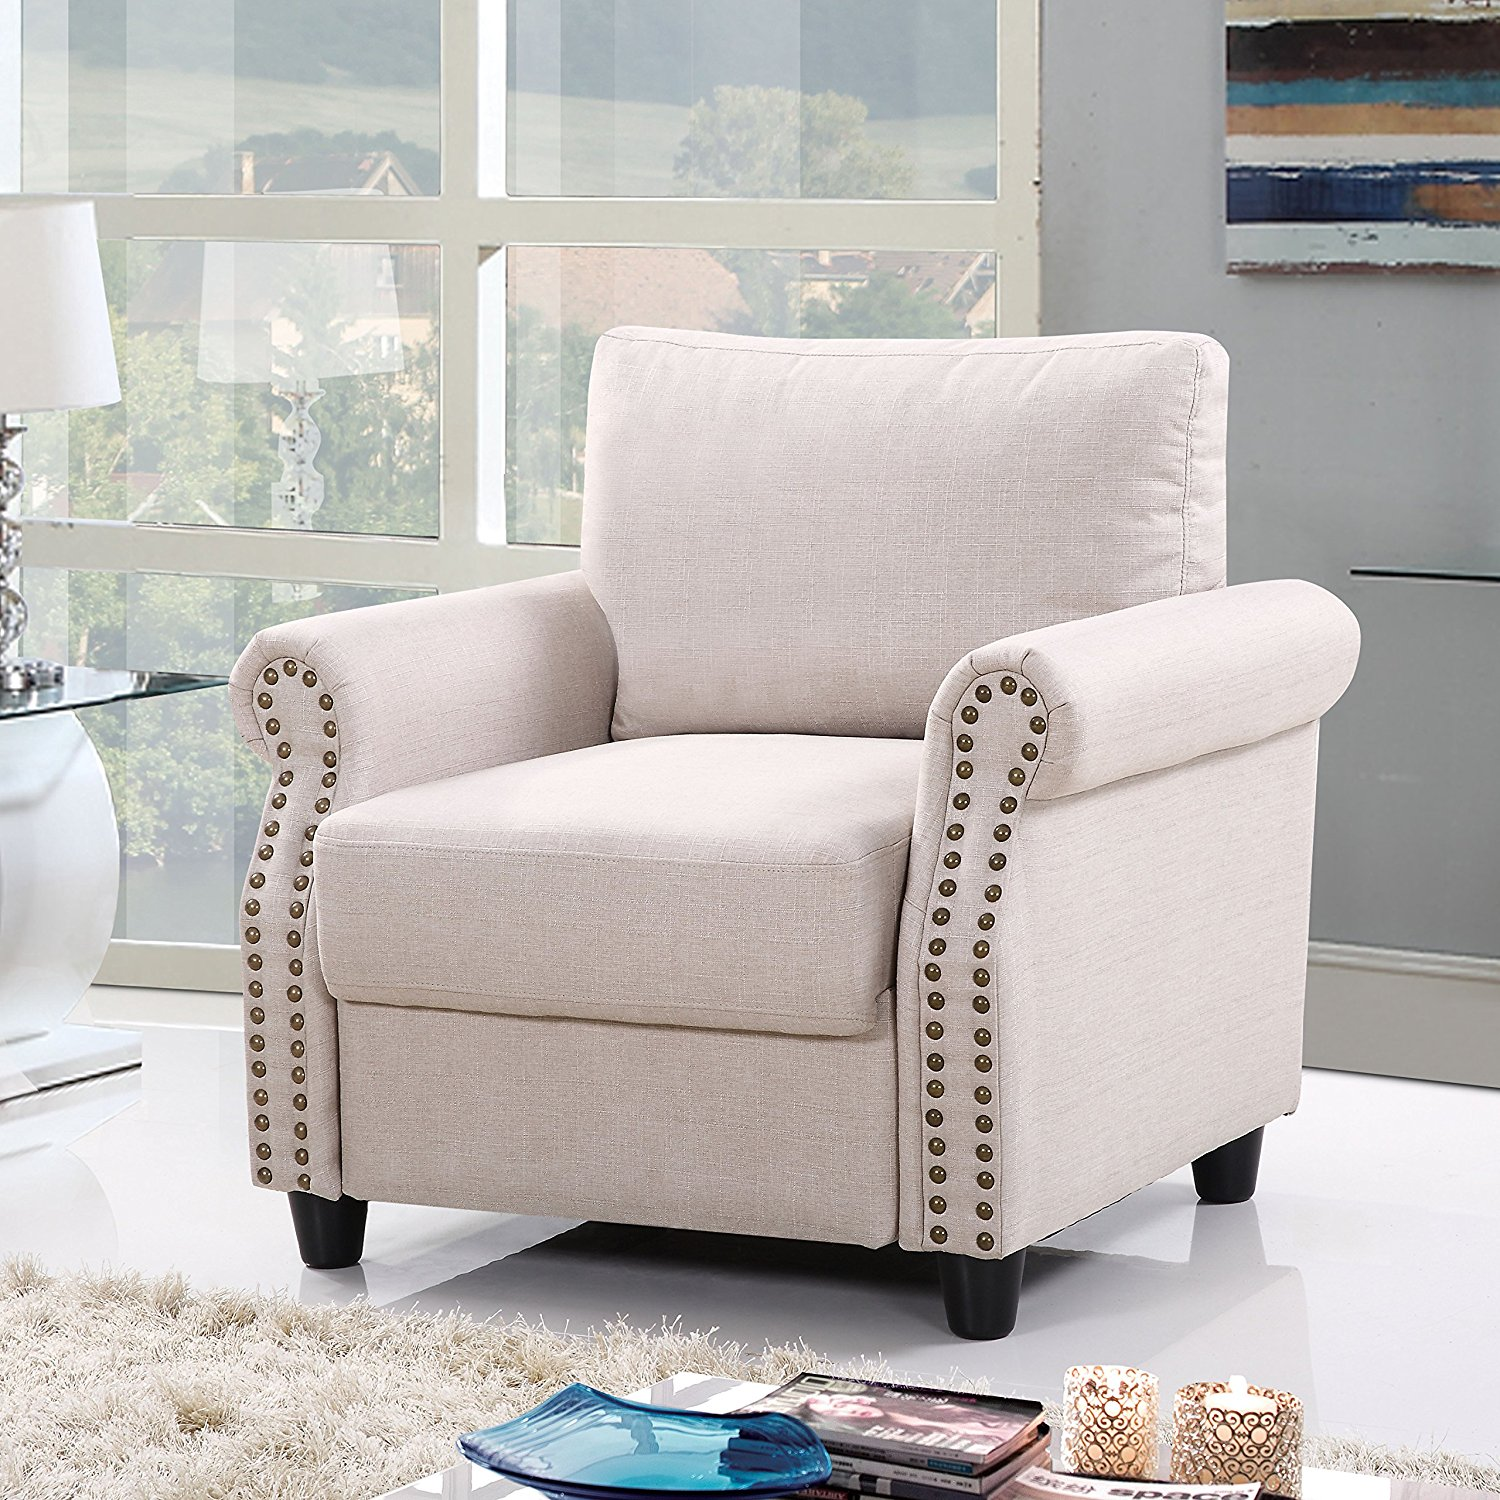 . Top 10 Best Living Room Chairs in 2019